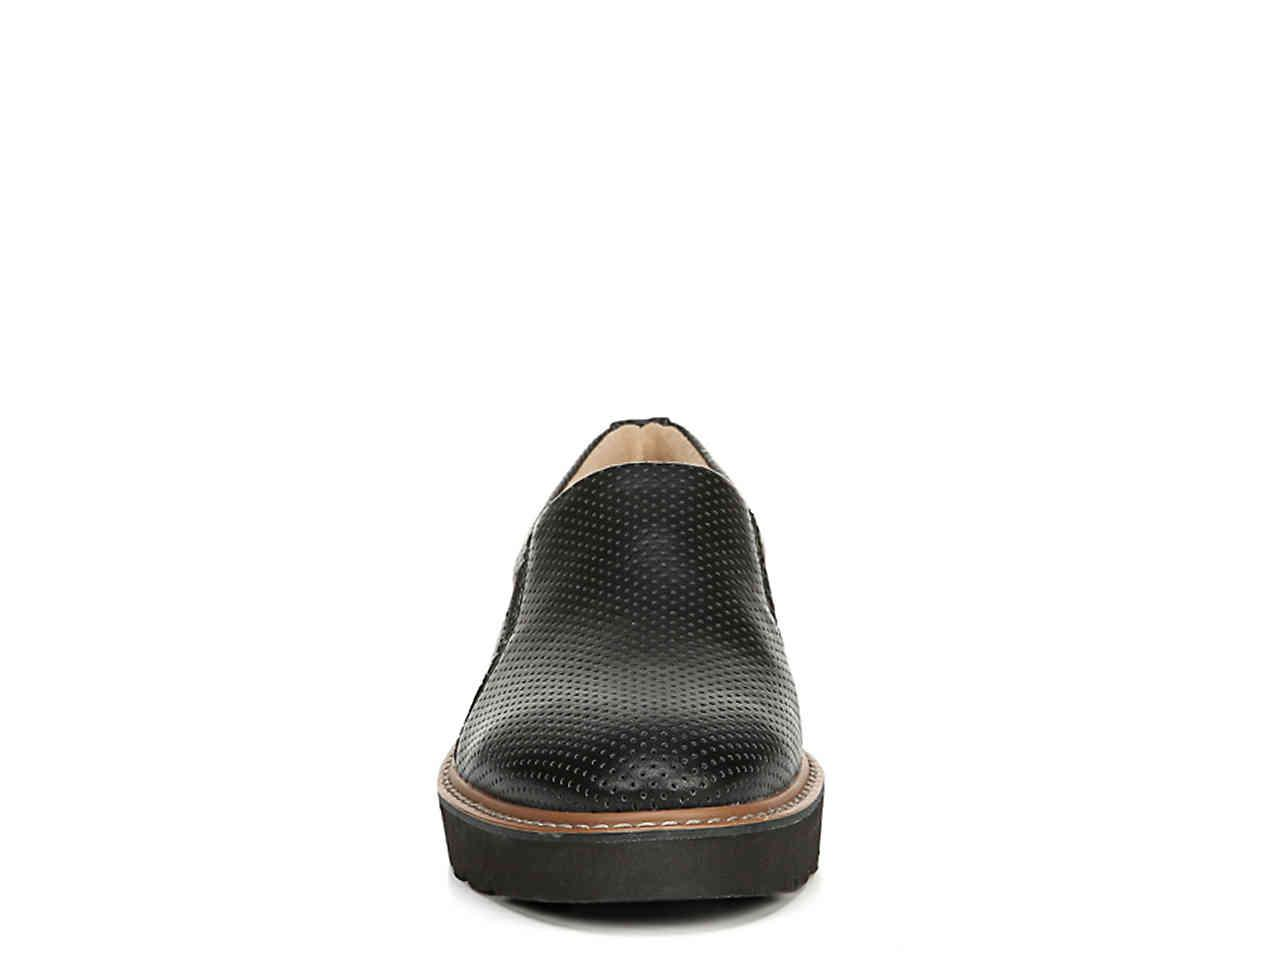 004ec98693f Naturalizer - Black Effie Wedge Loafer - Lyst. View fullscreen